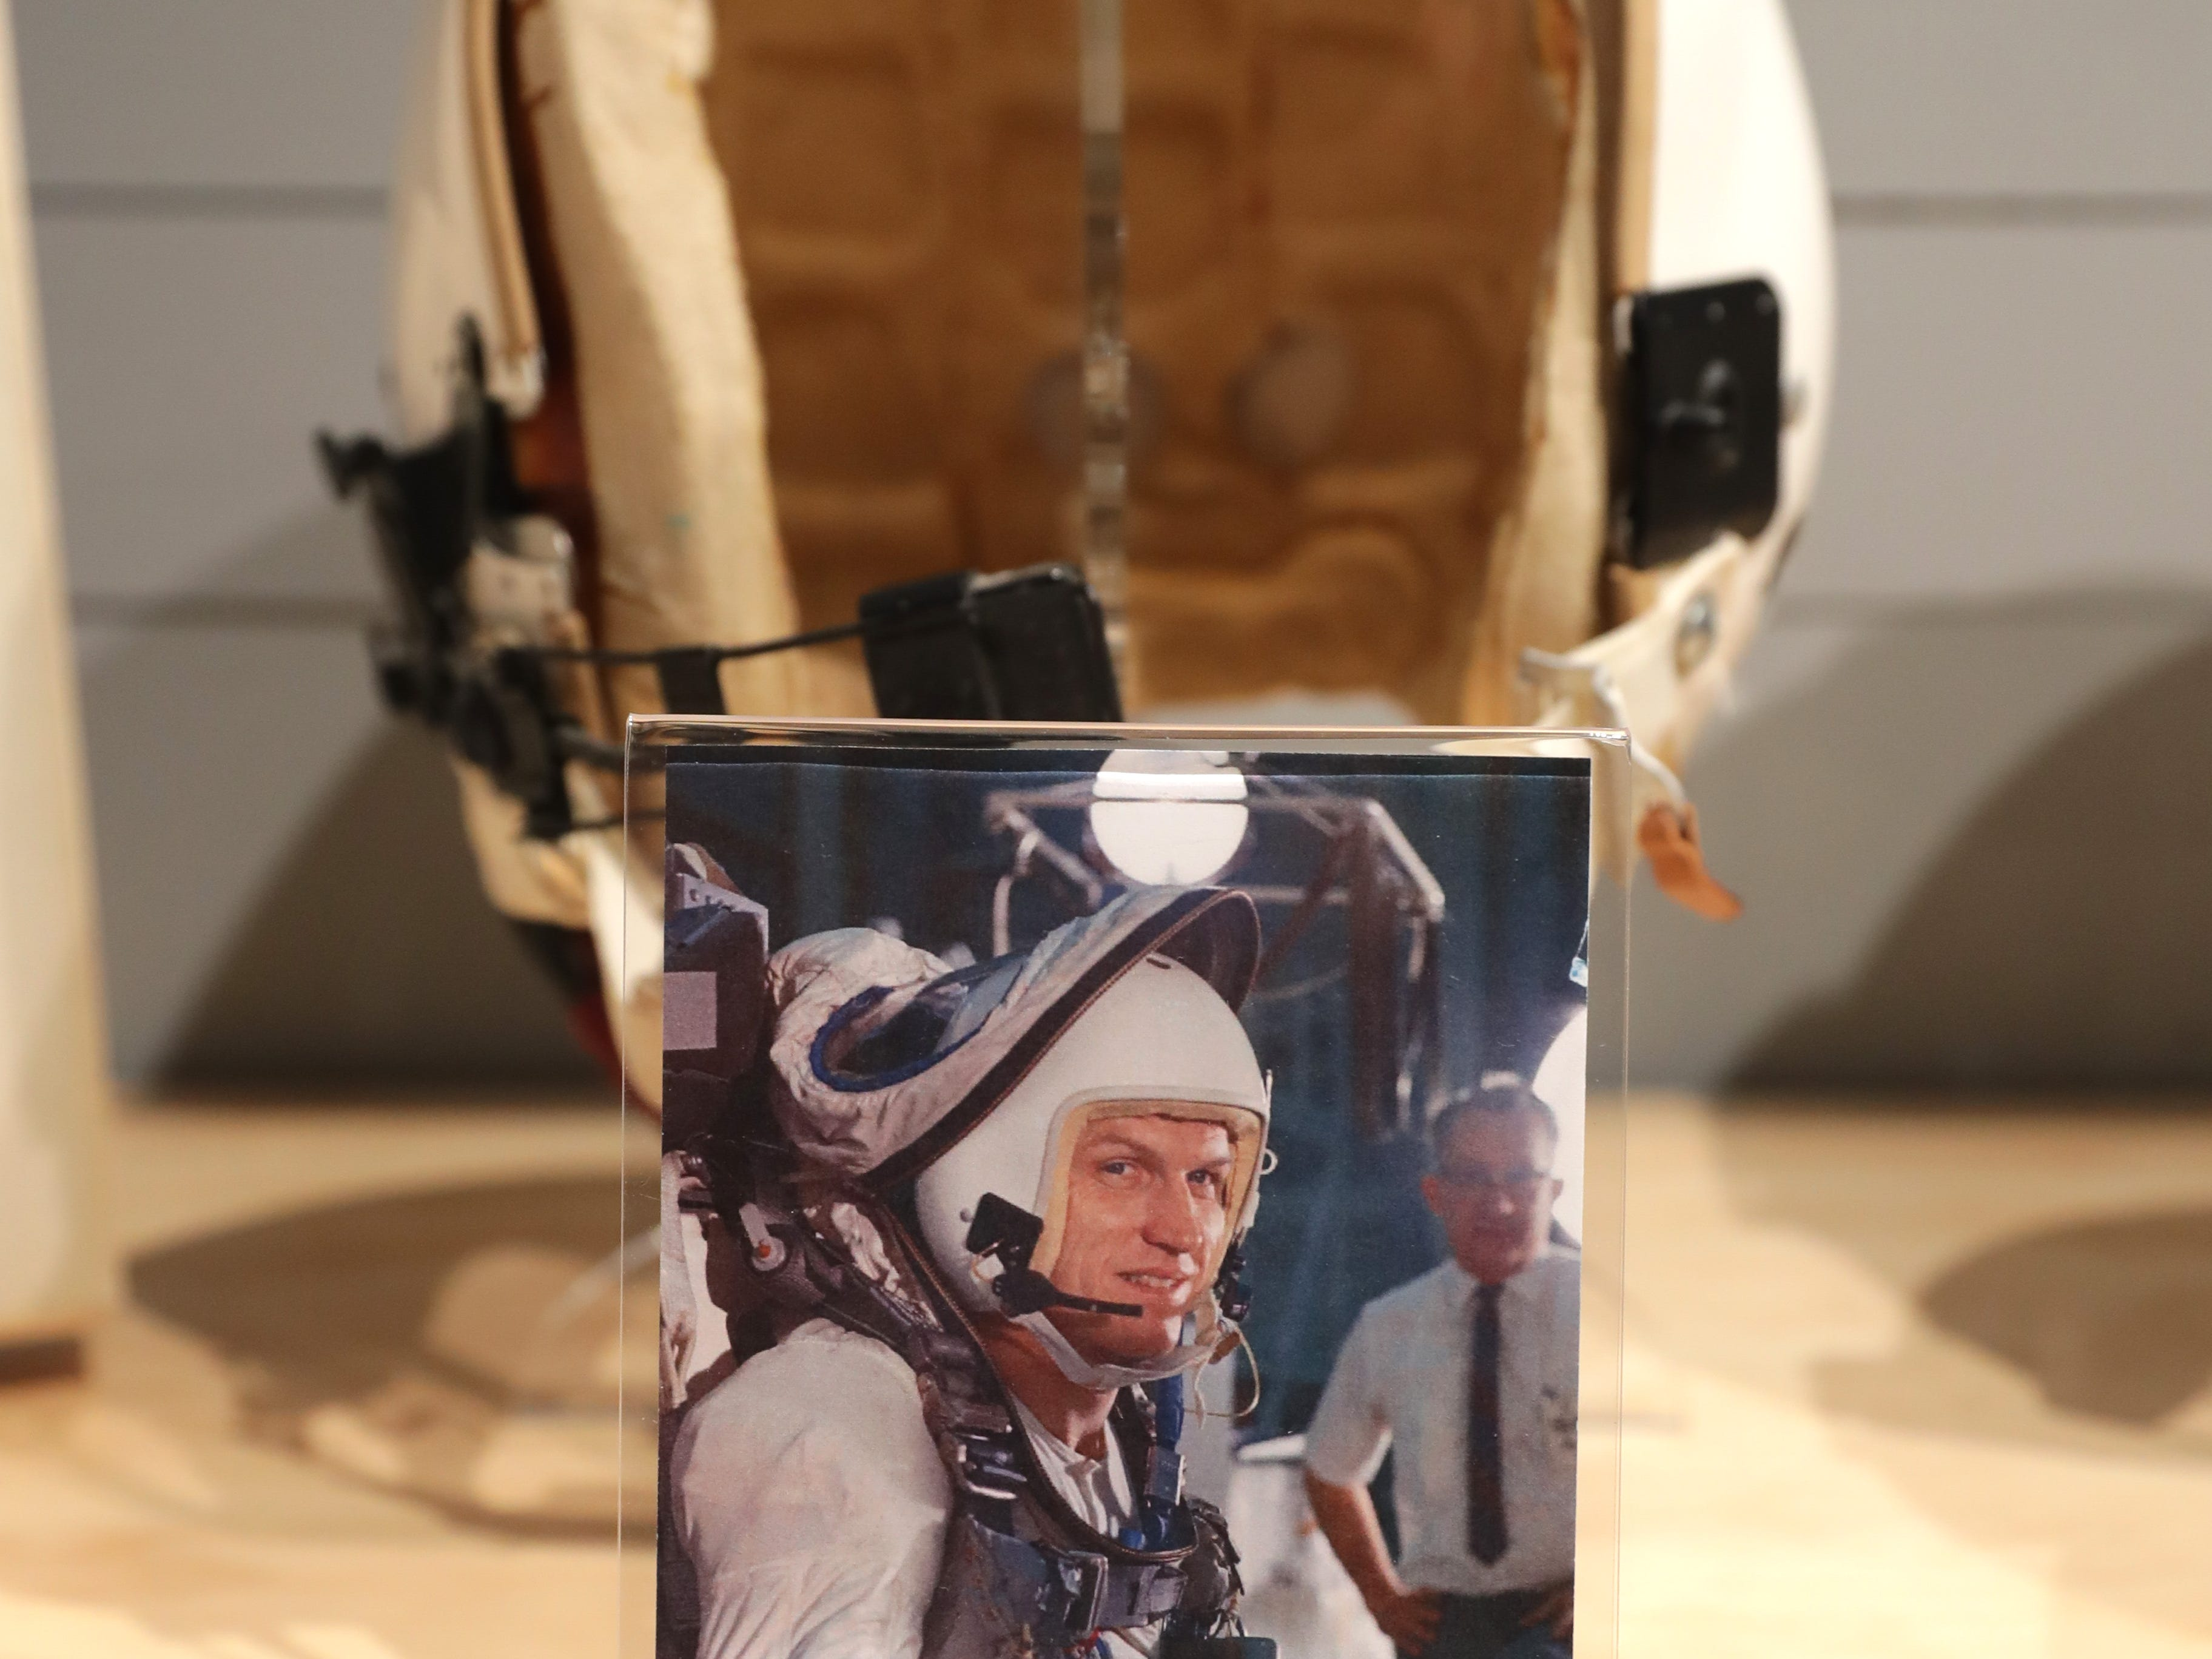 The protective helmet that astronaut Frank Borman (shown in foreground) wore during training for the Gemini 7 mission is one of the artifacts in a new exhibit at the EAA AirVenture Museum in Oshkosh. The exhibit is made up of part of a trove of personal memorabilia given to the museum by Borman, who commanded the Apollo 8 mission 50 years ago this month.